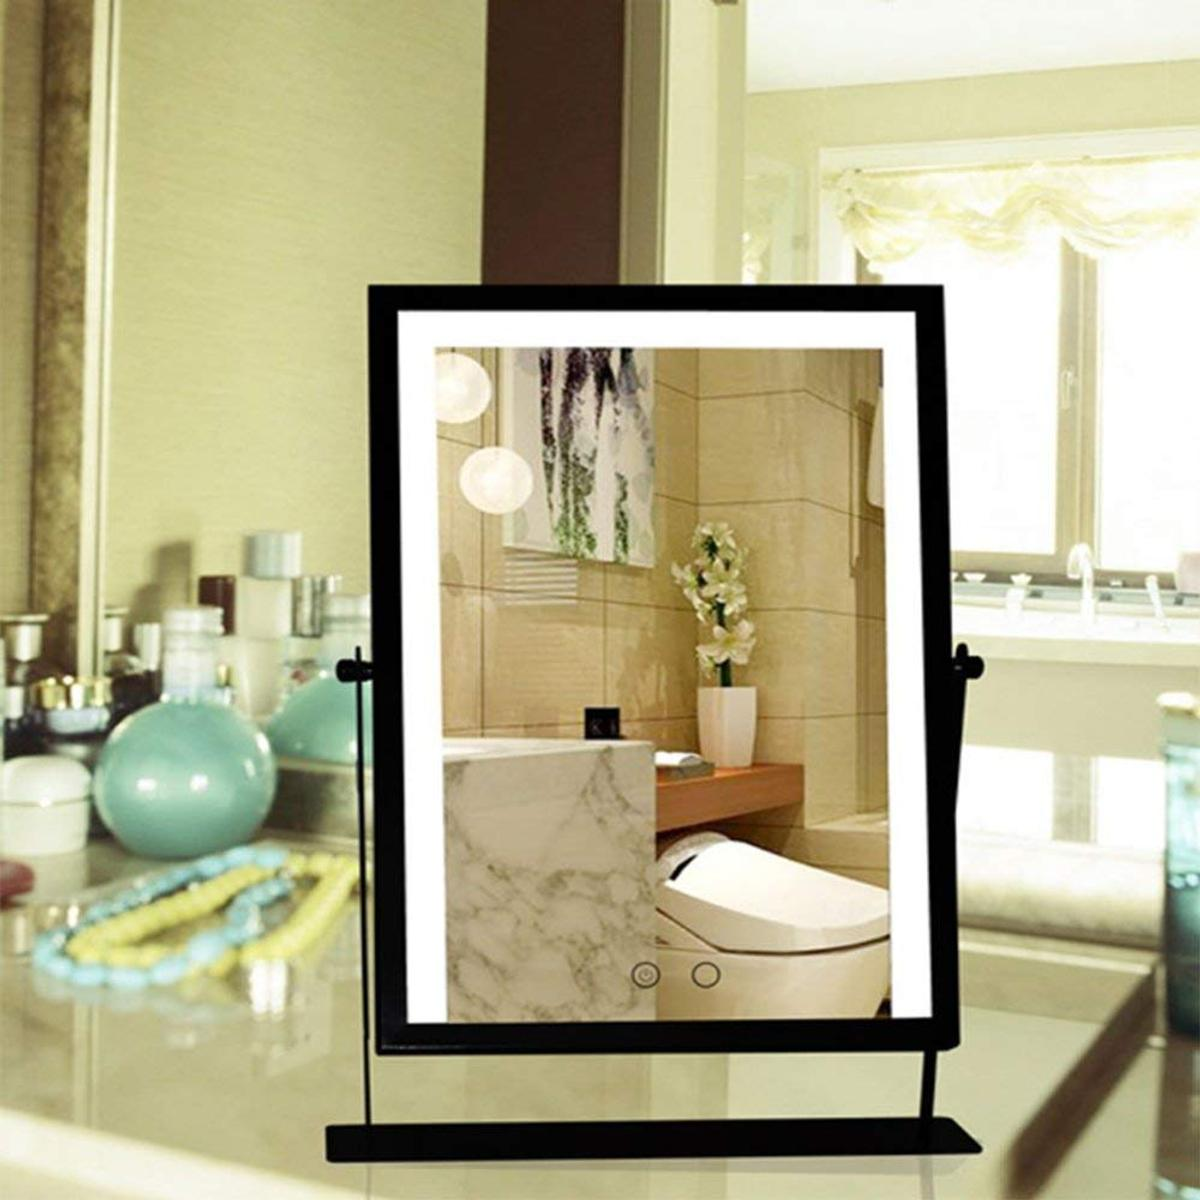 New Led Lighted Makeup Mirror Vanity Mirror In Pr4 Preston For 16 00 For Sale Shpock